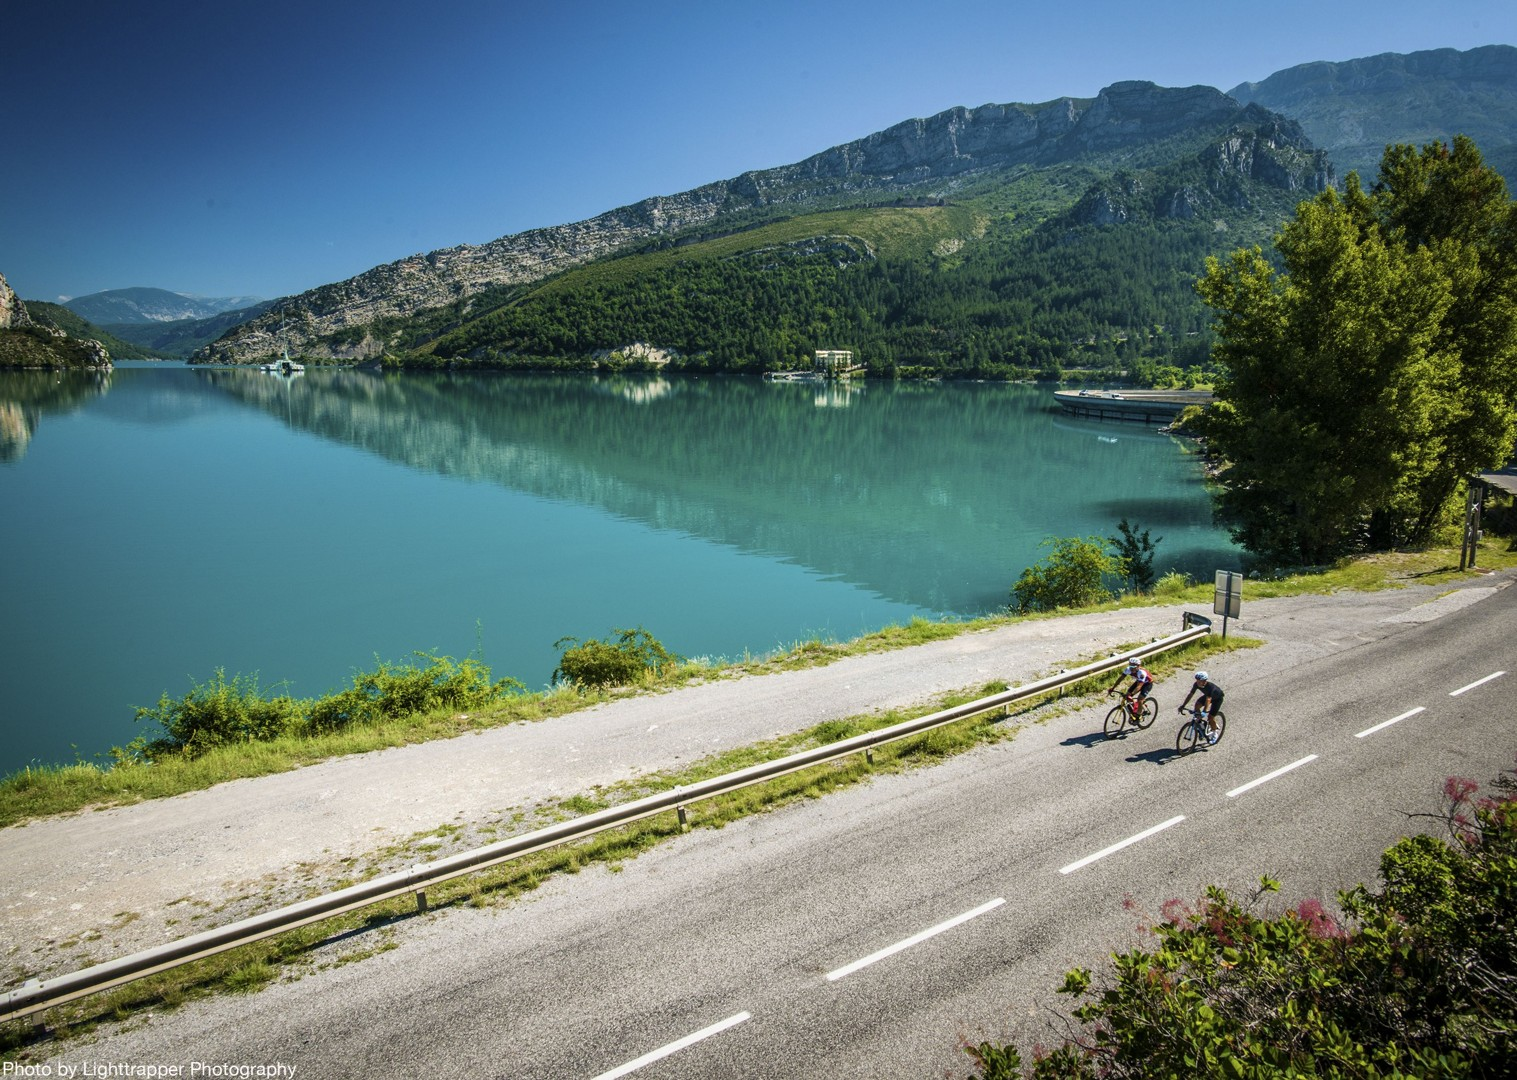 lac-de-saint-croix-french-road-cycling-holiday.jpg - France - Provence - Le Ventoux a Velo - Guided Road Cycling Holiday - Road Cycling